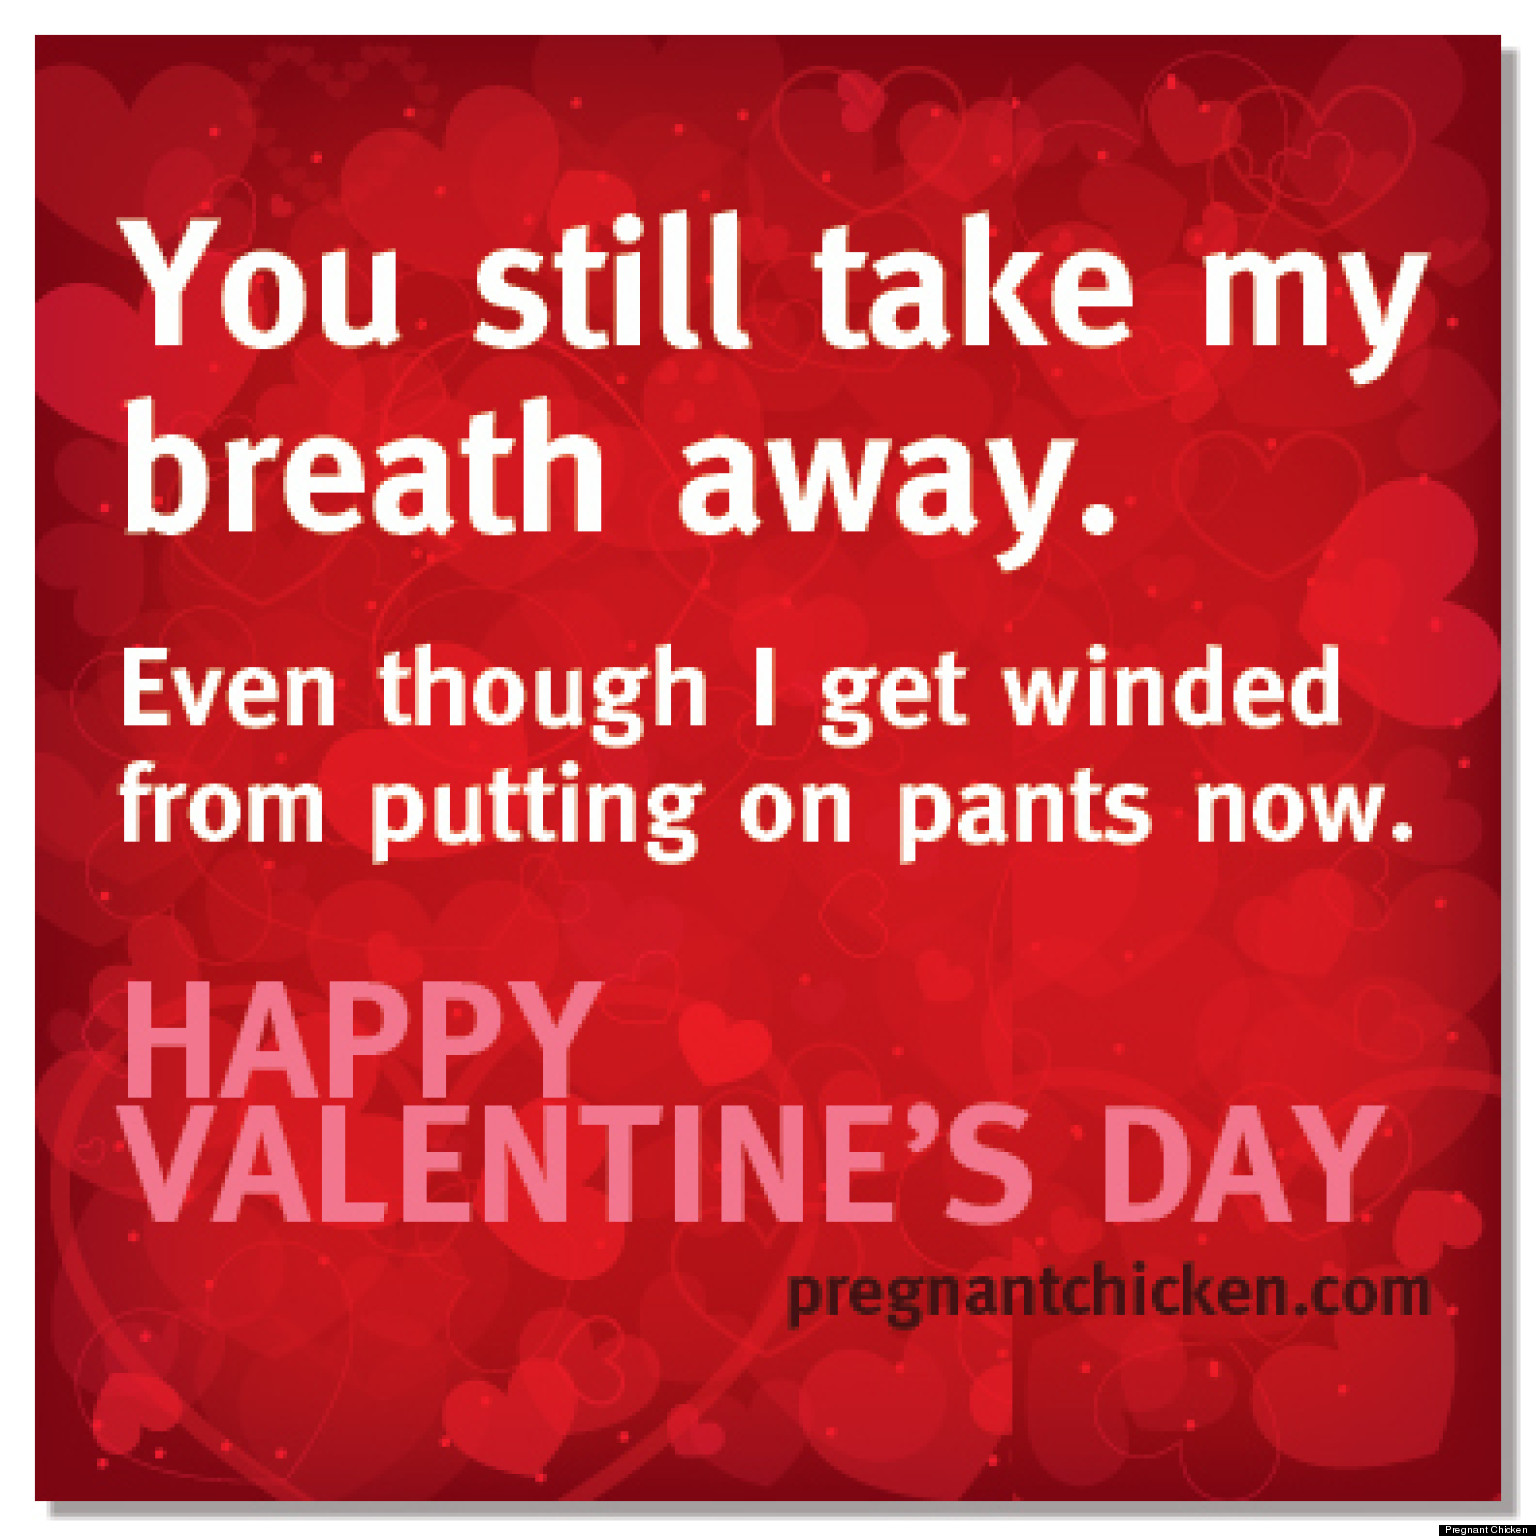 funny valentines day quotes for my wife - Funny Valentines For Pregnant Women To Give Their Partners